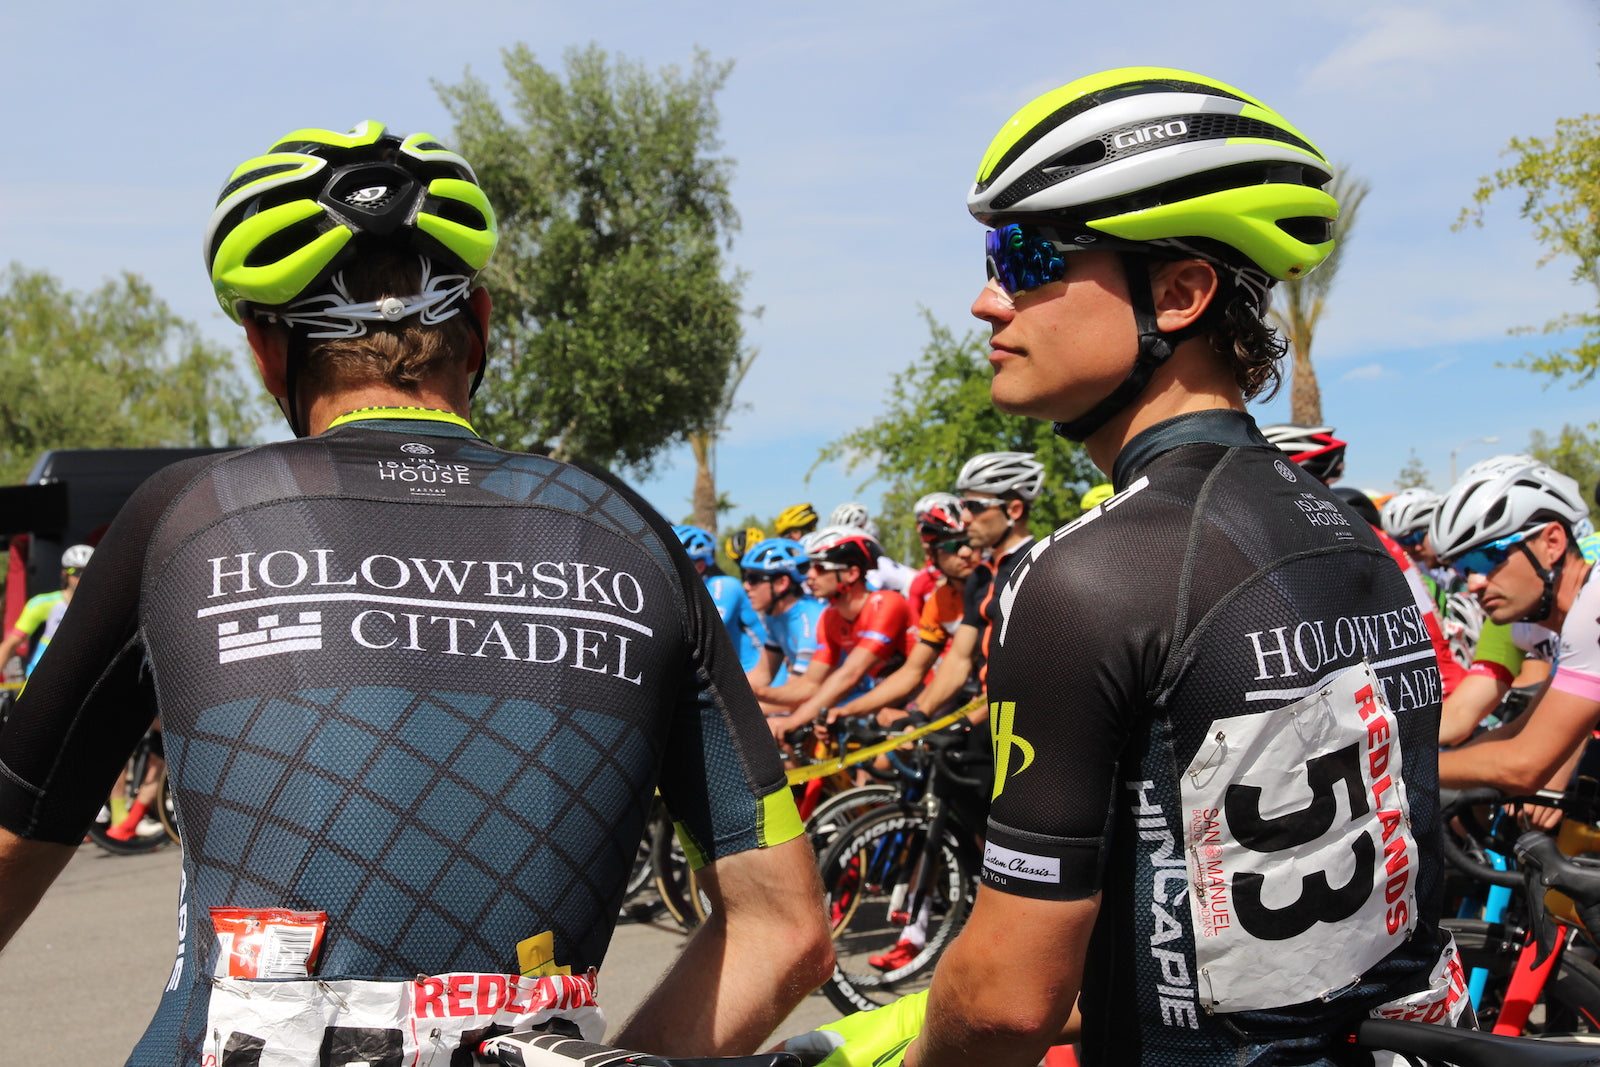 bicycle racers prepare before the start of a race